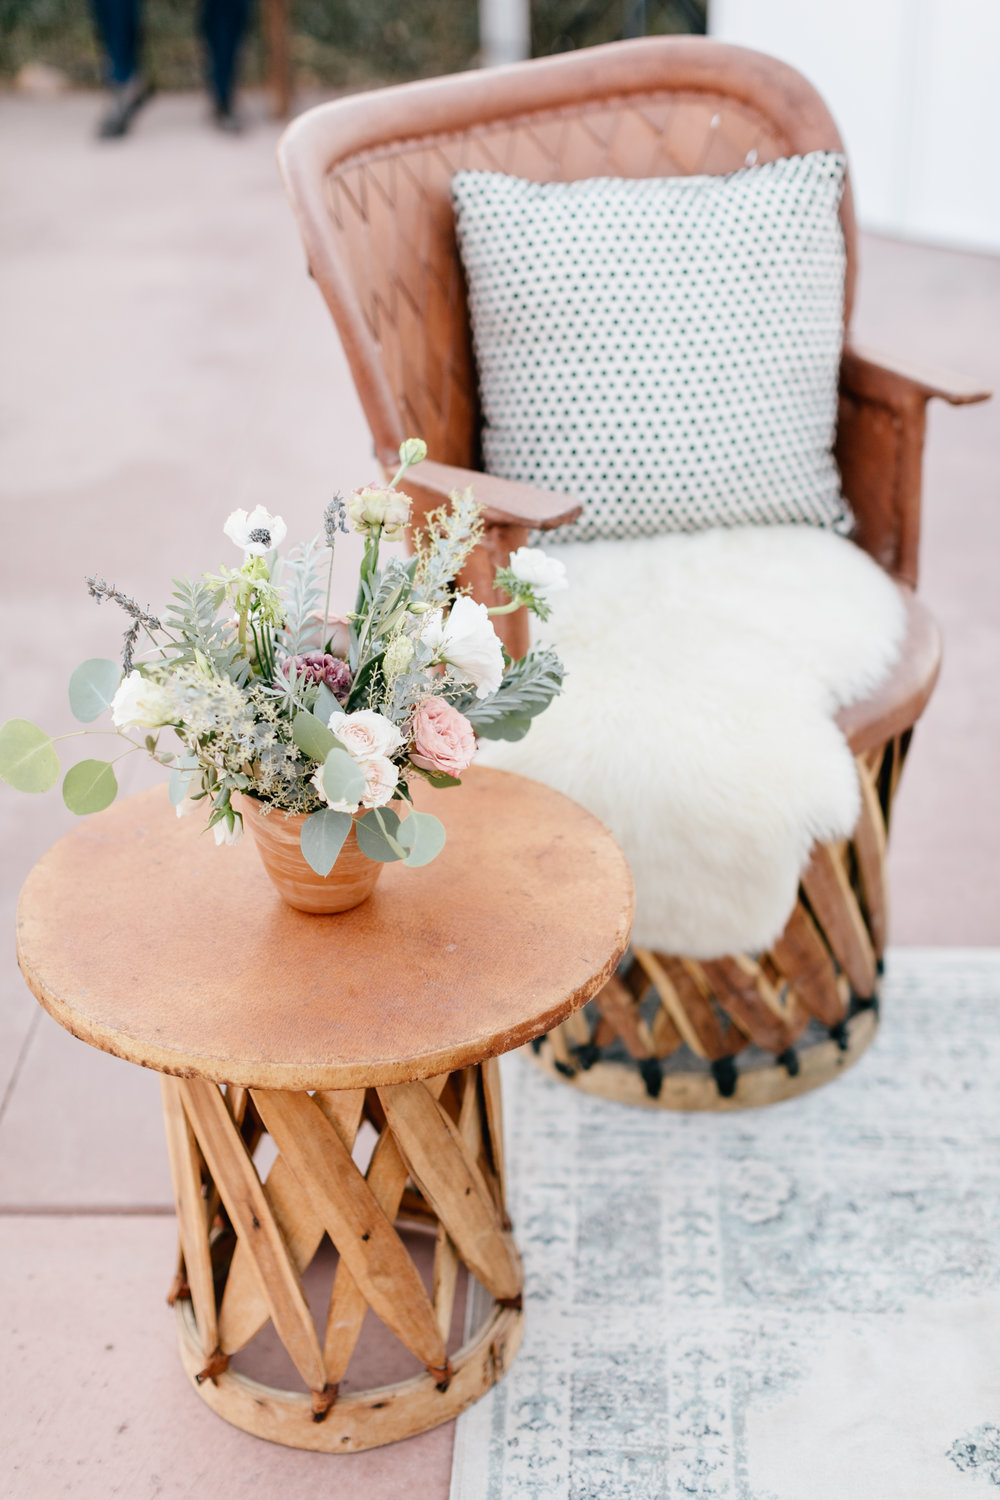 An Intimate Sedona Wedding Nestled in the Arizona Red Rocks  - Tremaine Ranch - AZ Arizona Wedding & Event, Vintage, Furniture, Tableware, & Specialty Rentals in Phoenix, Tucson, Flagstaff, Sedona, Tempe, Chandler, Mesa, Gilbert, Prescott, Payson 5168.jpg